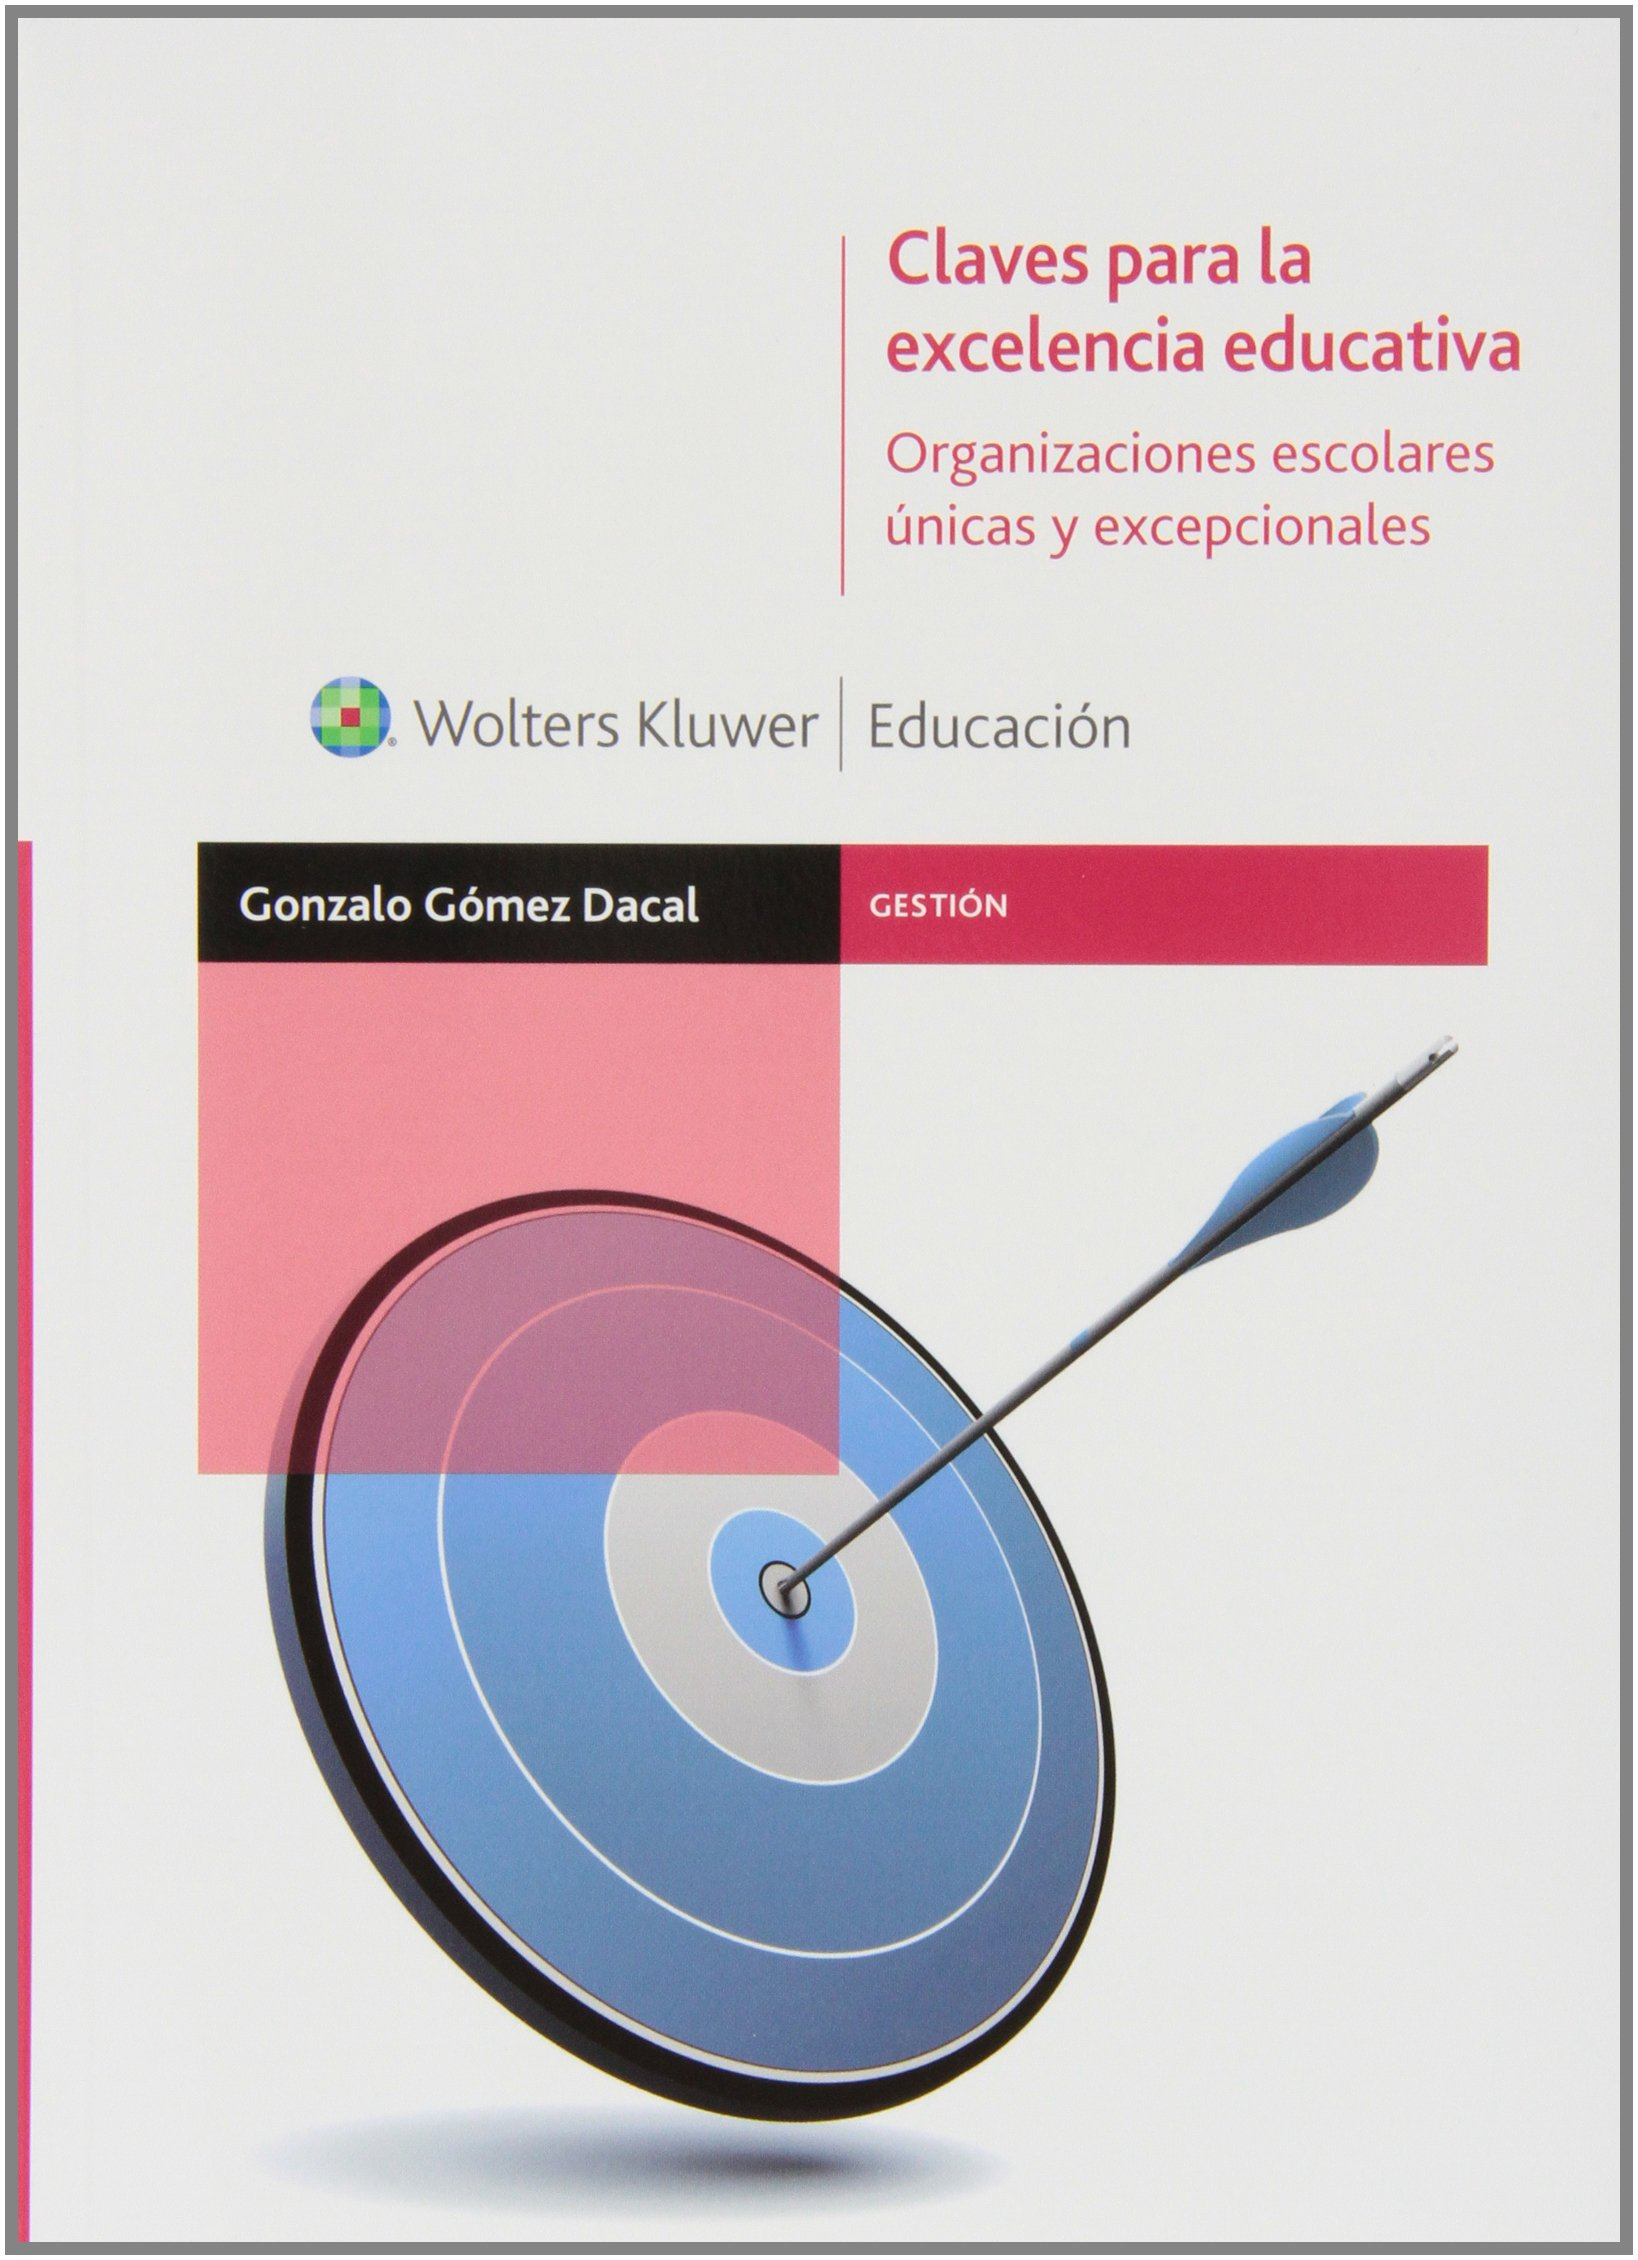 CLAVES PARA LA EXCELENCIA EDUCATIVA